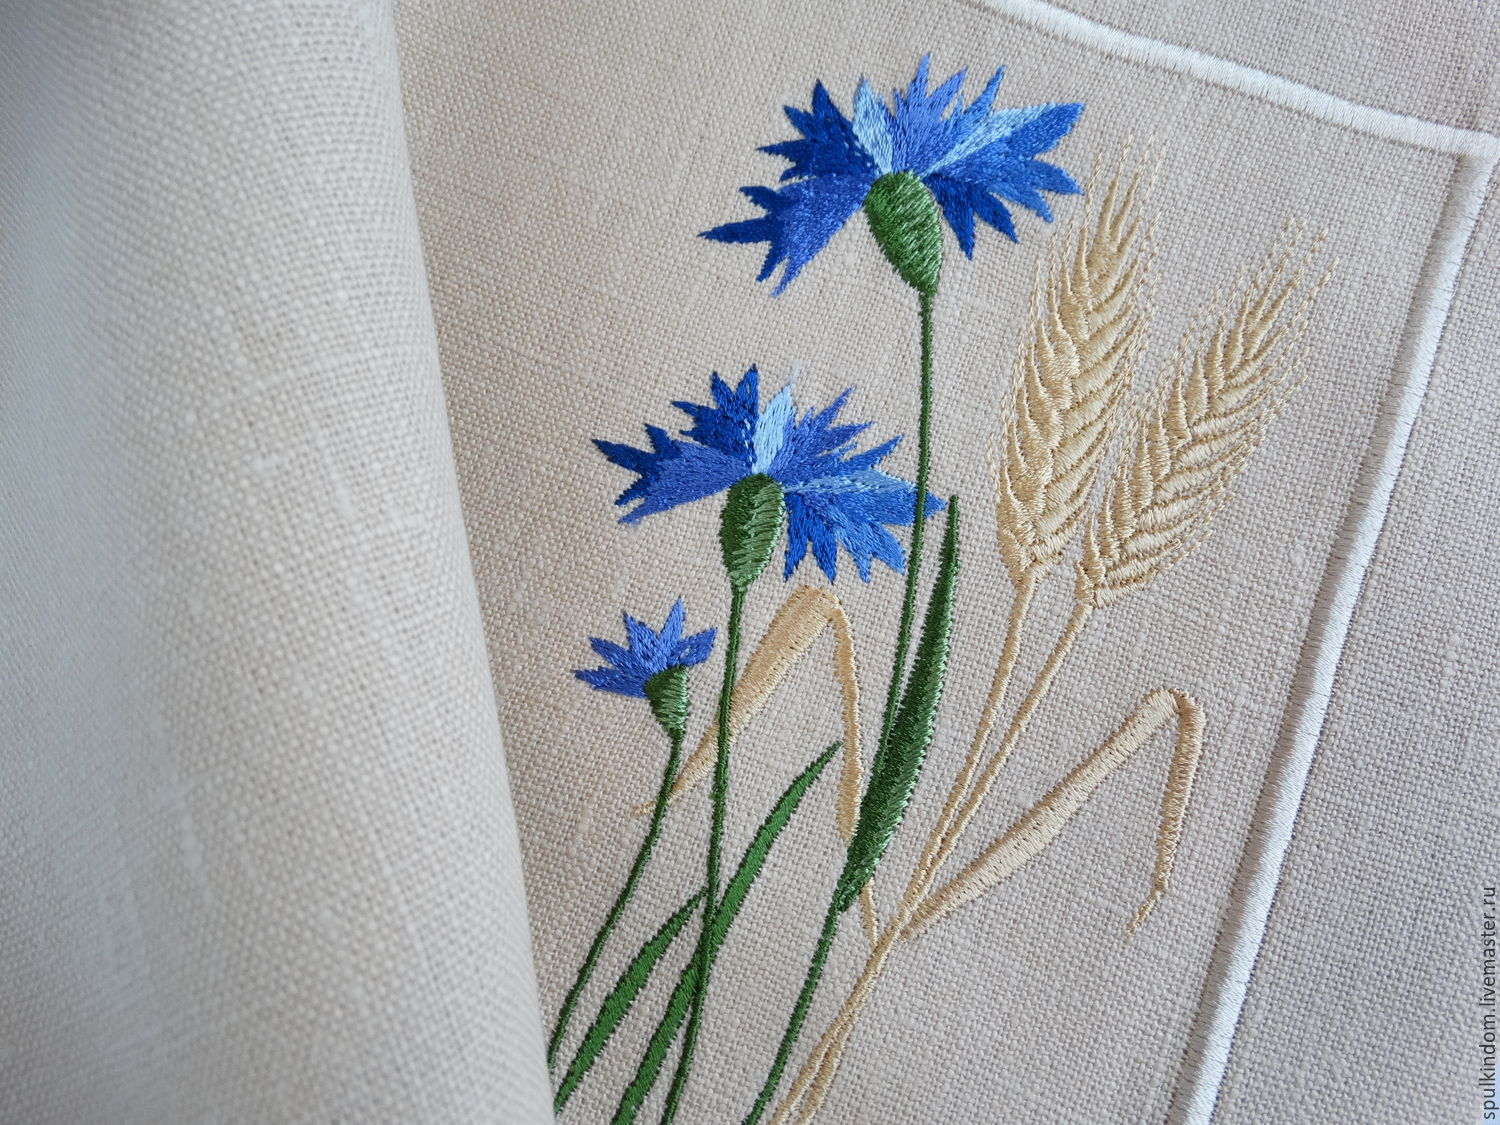 Plasmat under hot embroidery `Cornflowers and spikelets` `Sulkin house` embroidery workshop